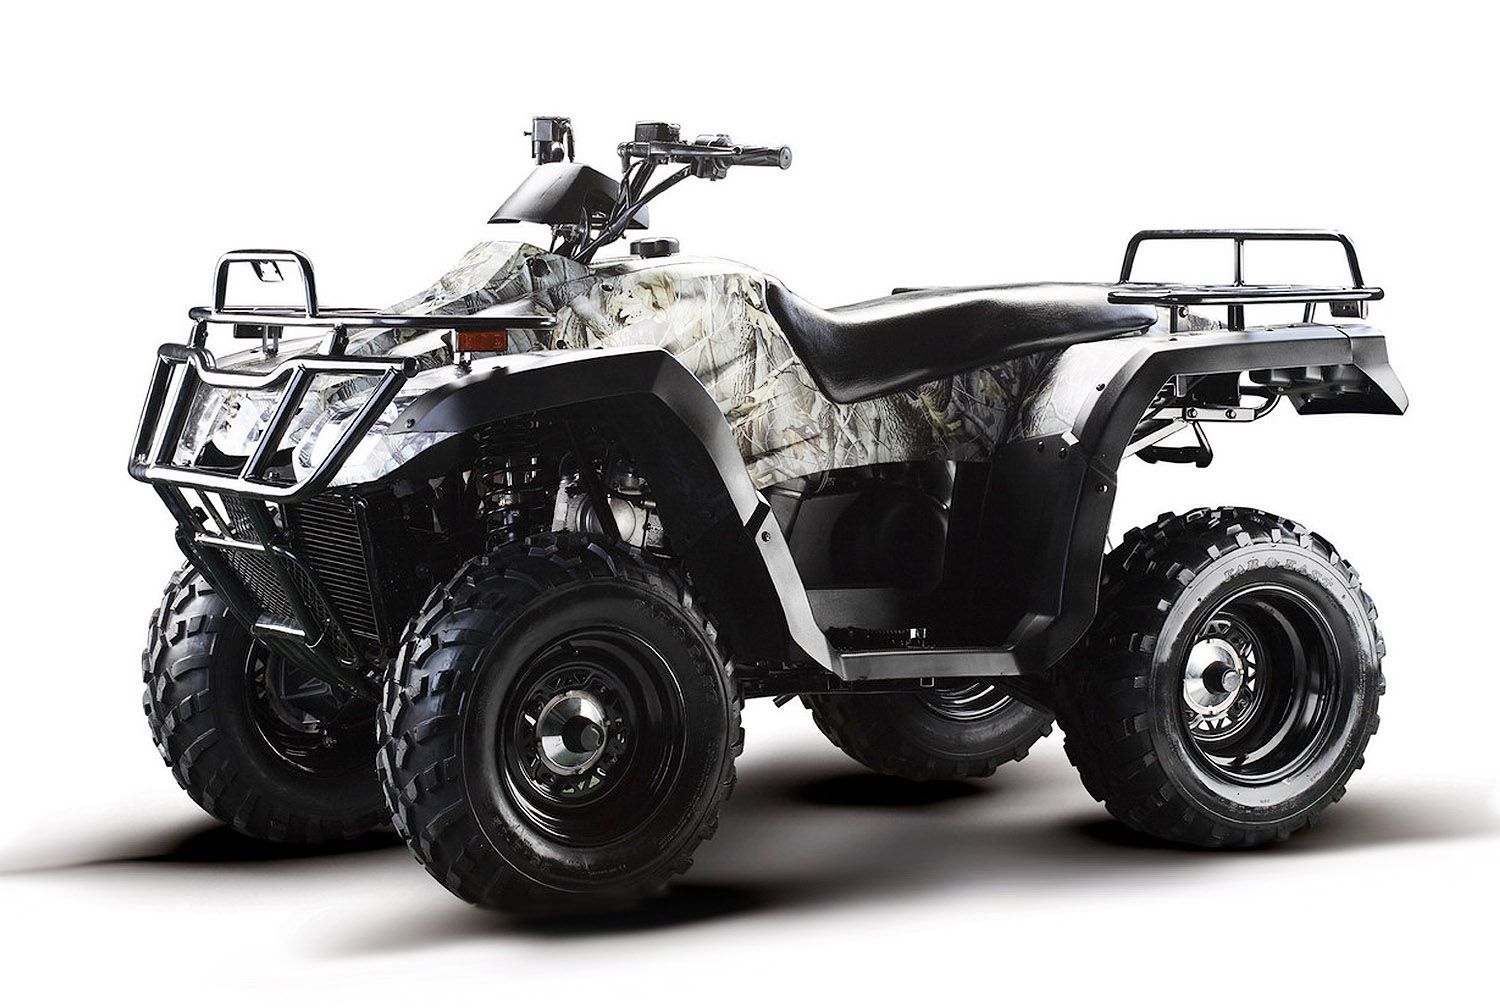 300cc hunter 300 s1 4x4 winch 4x federung motostar. Black Bedroom Furniture Sets. Home Design Ideas